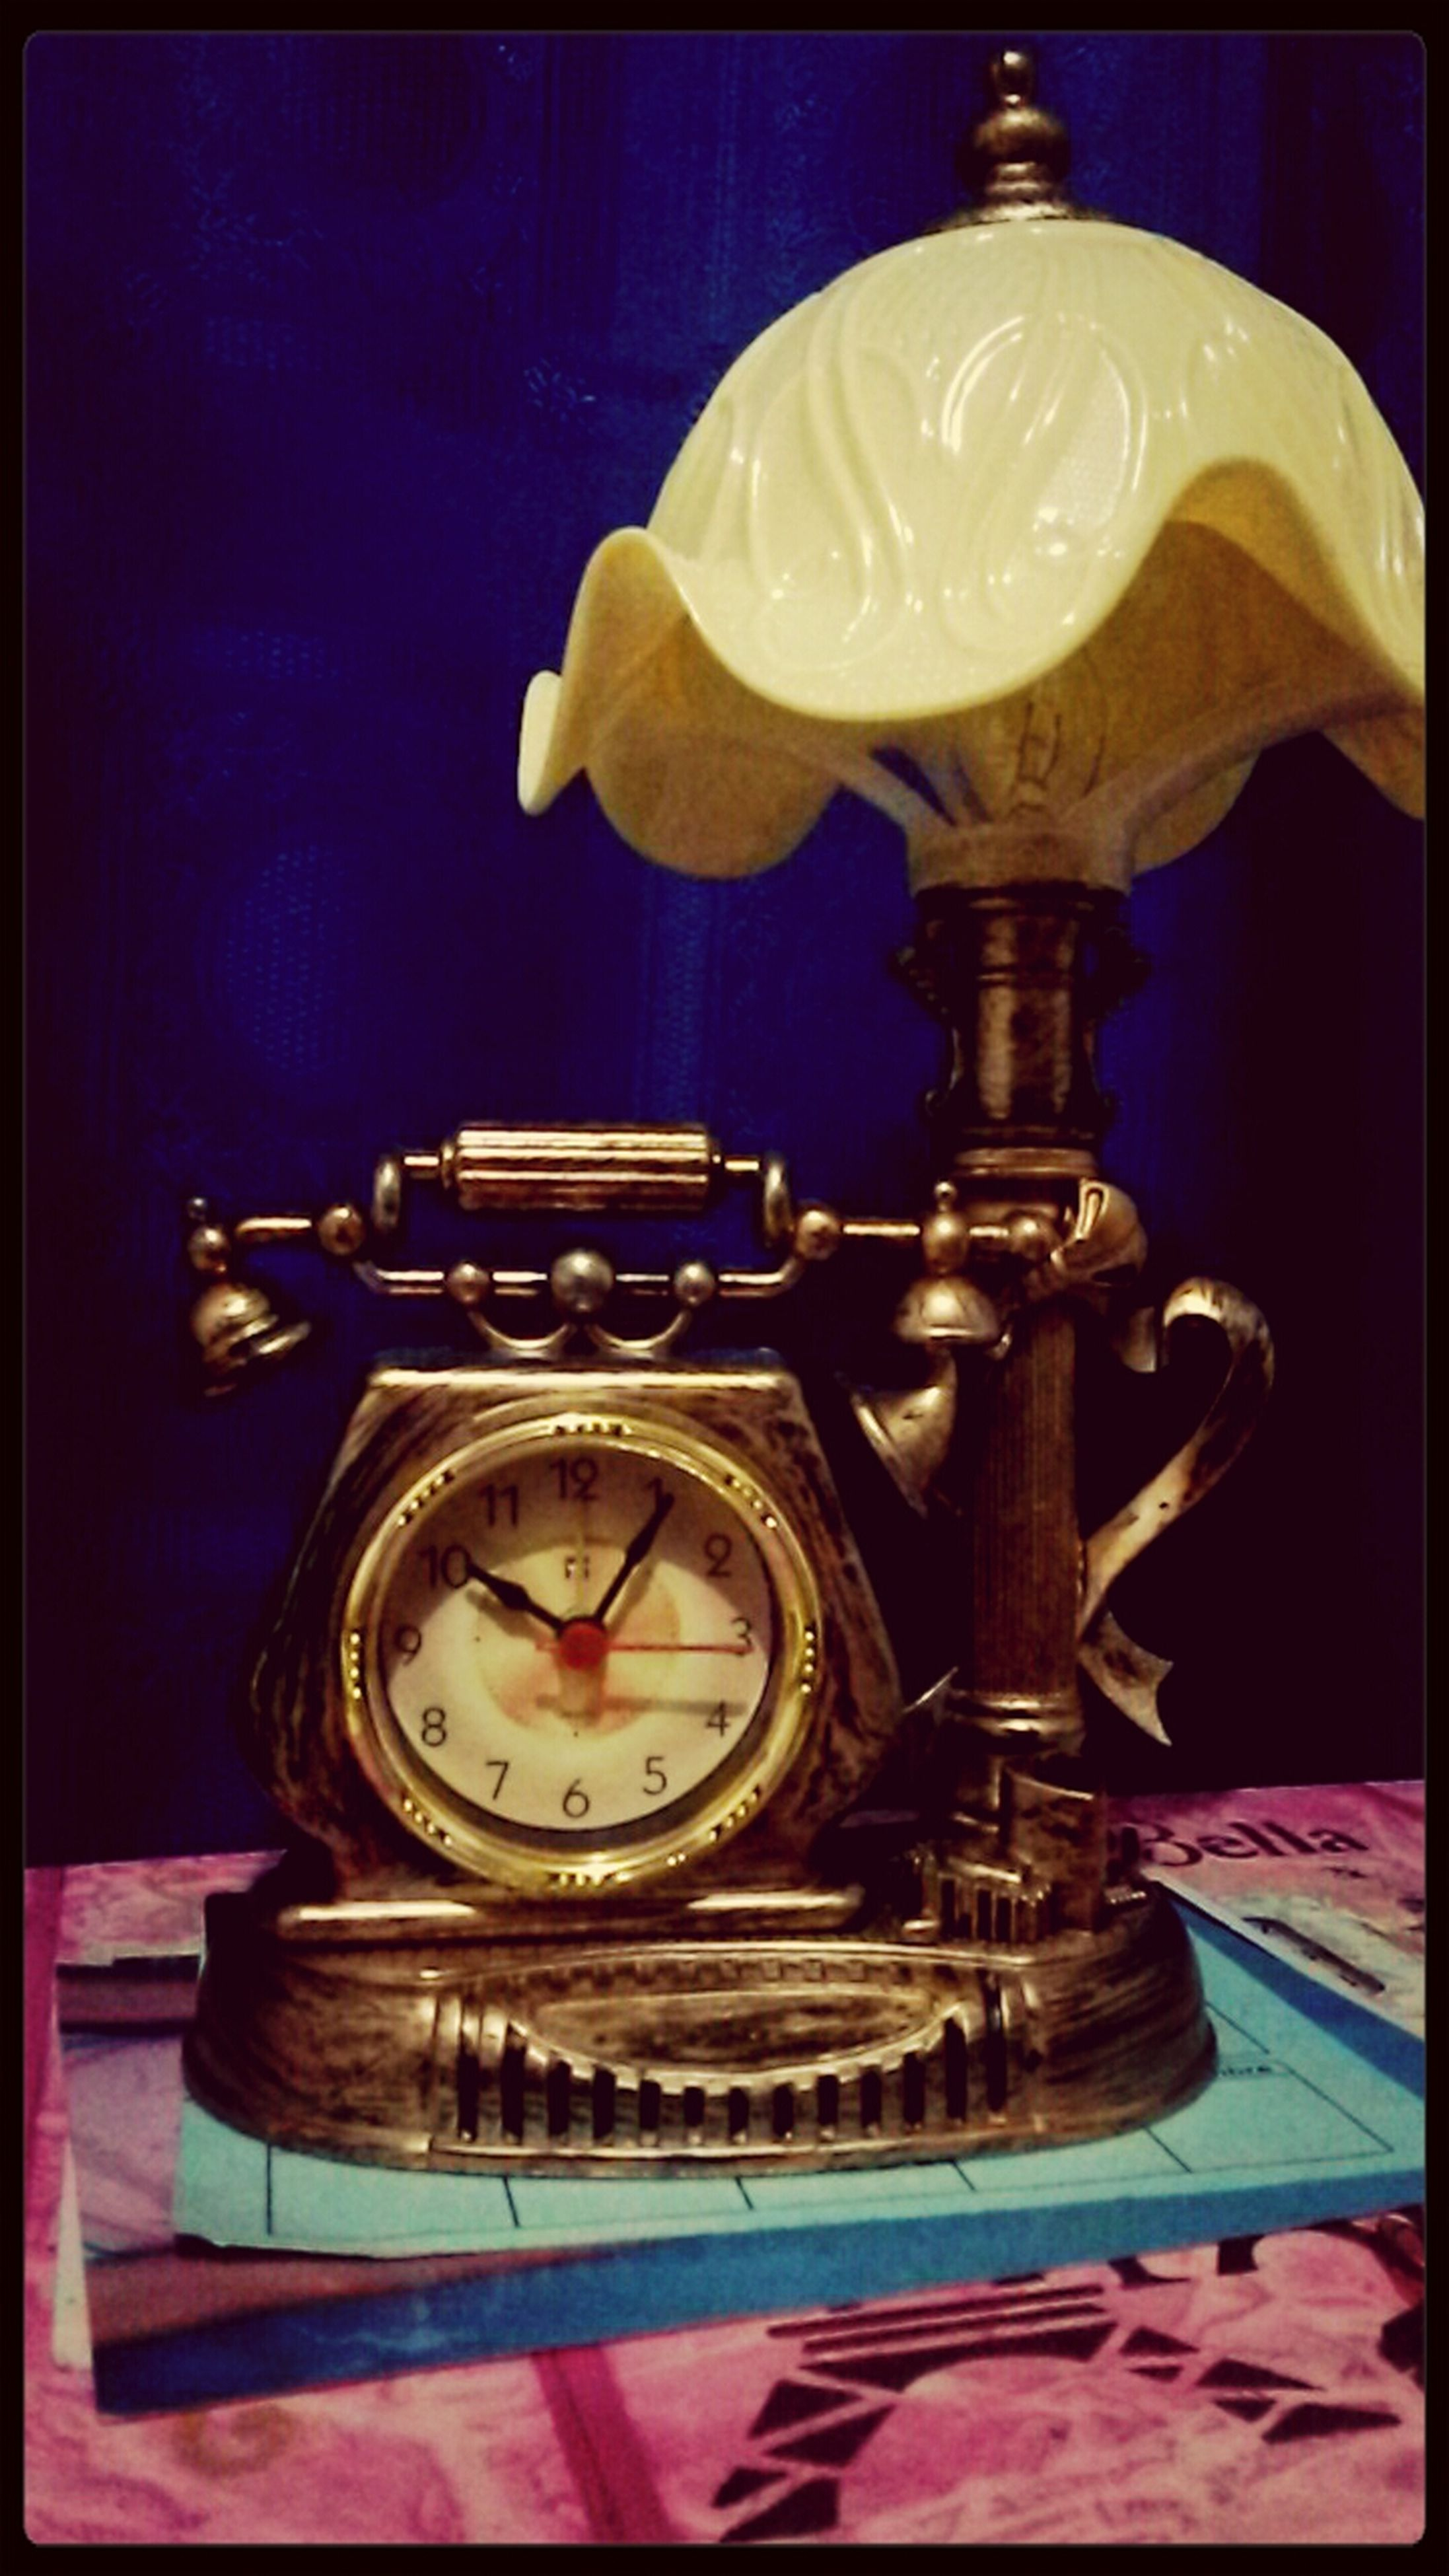 indoors, close-up, ornate, antique, clock, transfer print, still life, old-fashioned, gold colored, table, single object, illuminated, time, auto post production filter, glass - material, luxury, no people, retro styled, lighting equipment, studio shot